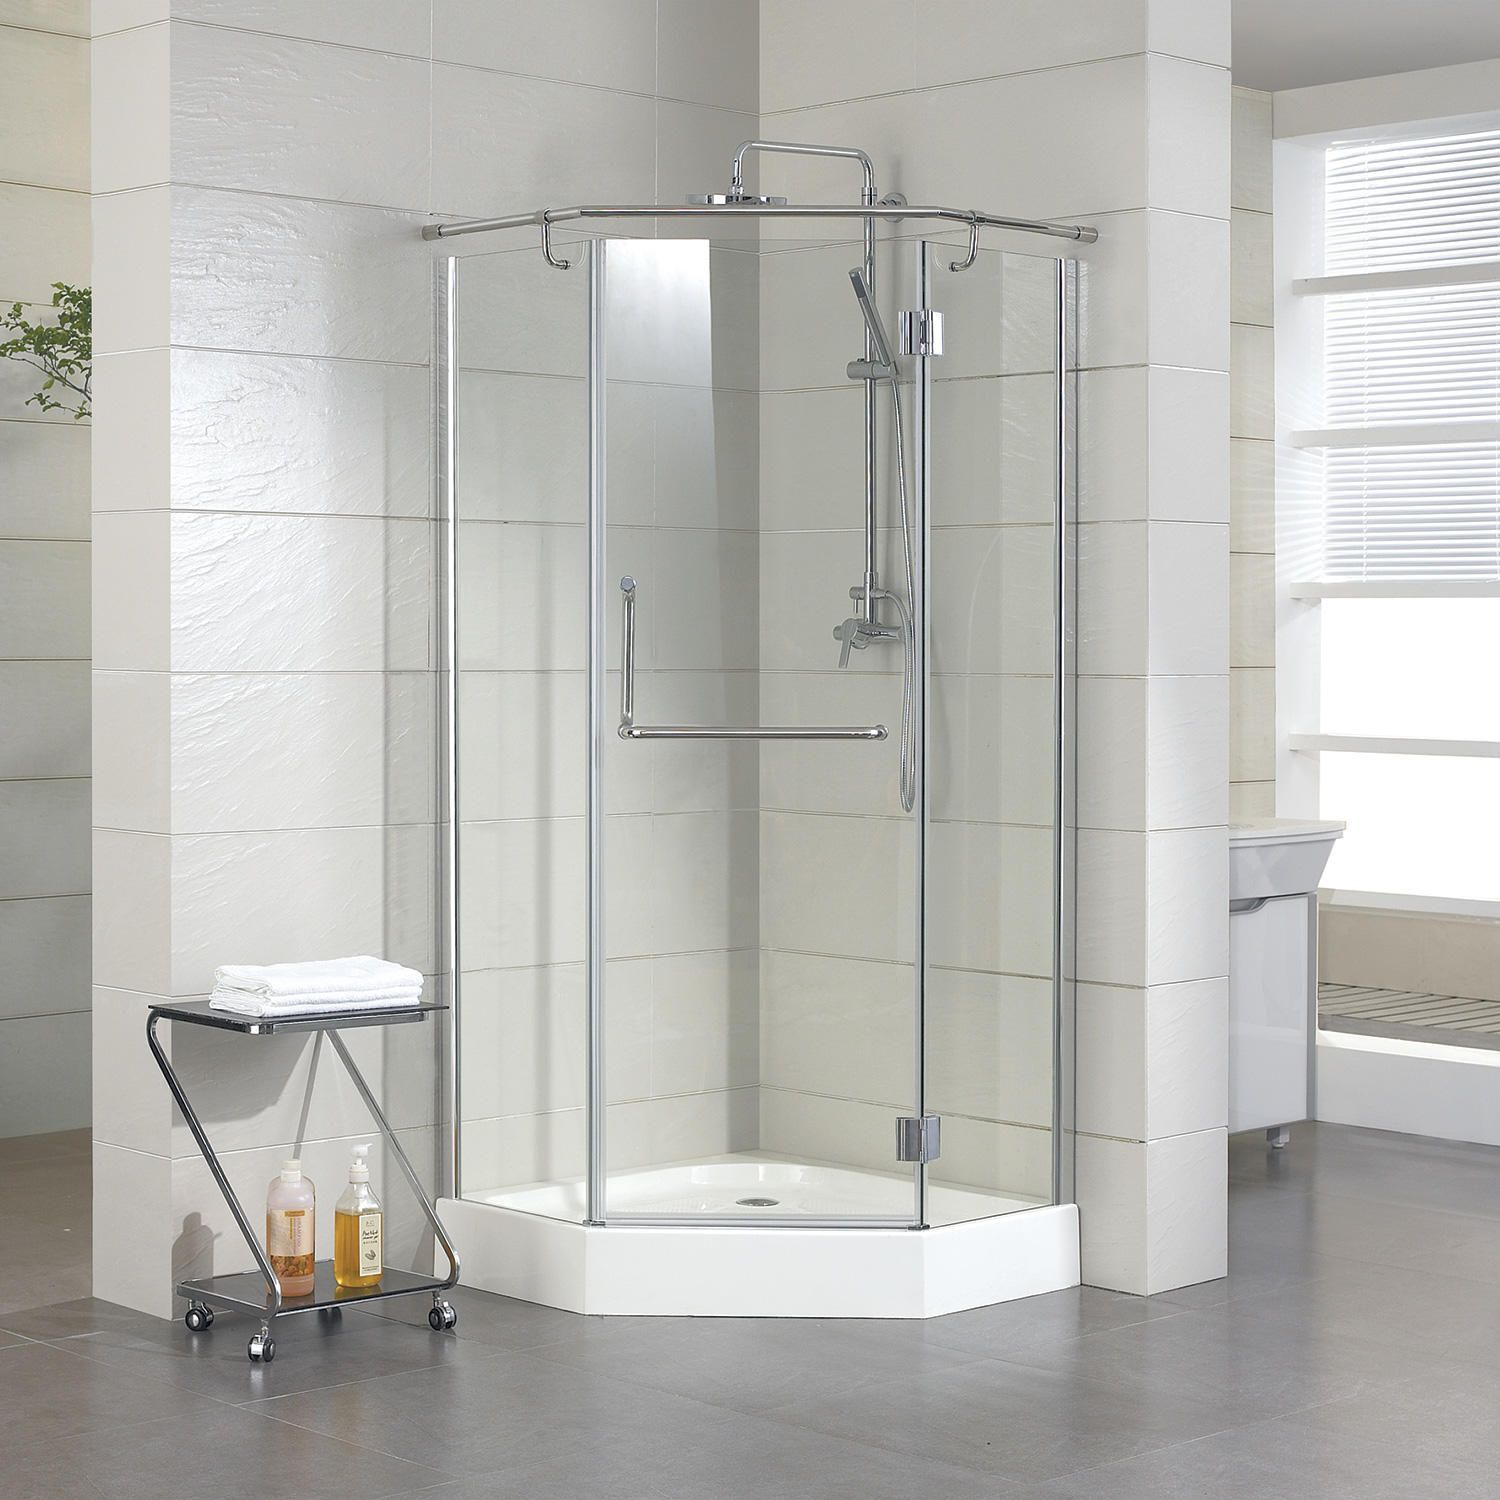 36 X 36 Alver Neo Angle Shower Enclosure With Tray Right Hand Door Polished Aluminum Neo Angle Shower Doors Neo Angle Shower Neo Angle Shower Enclosures